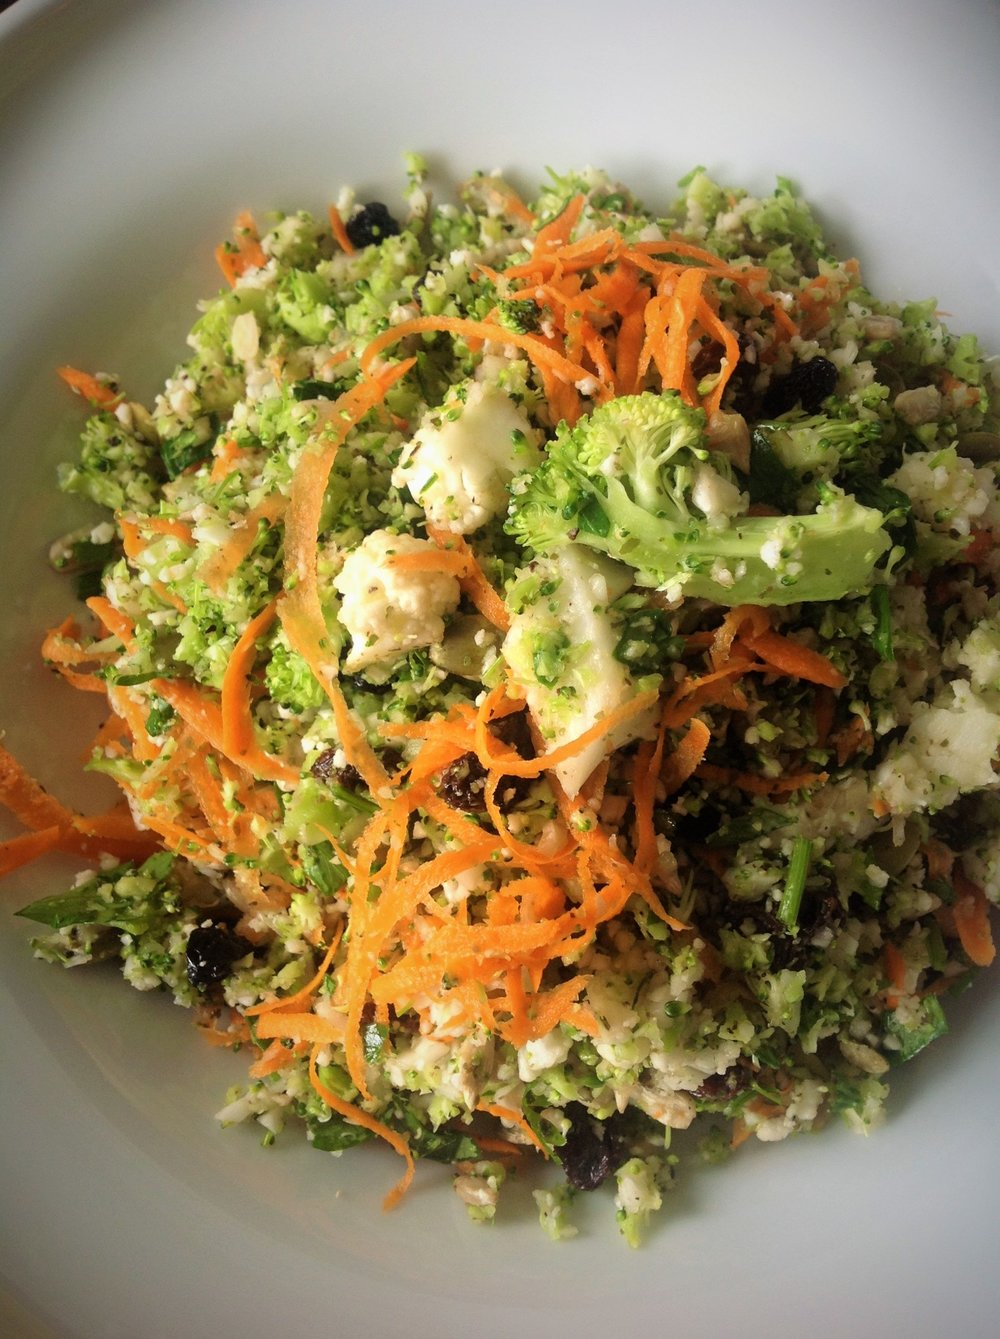 Whole Foods Market Detox Salad